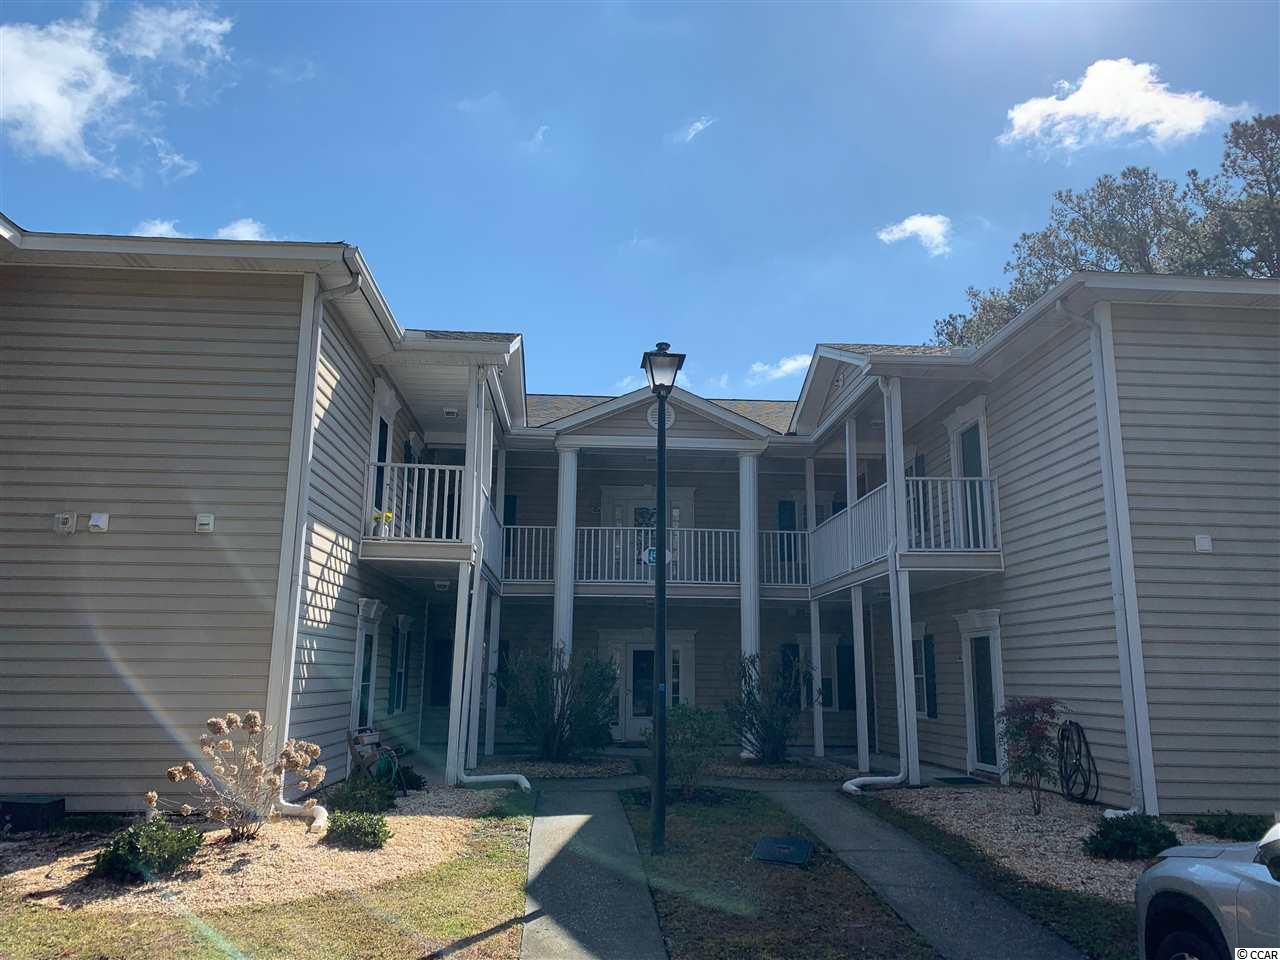 This is a second floor, end unit  2BR 2BA condo that has been freshly painted and carpeted in 2019.  It also features a new microwave, new dishwasher, and AC unit.  Enjoy beach living and all the Murrells Inlet area has to offer.  There is also a onsite pool.